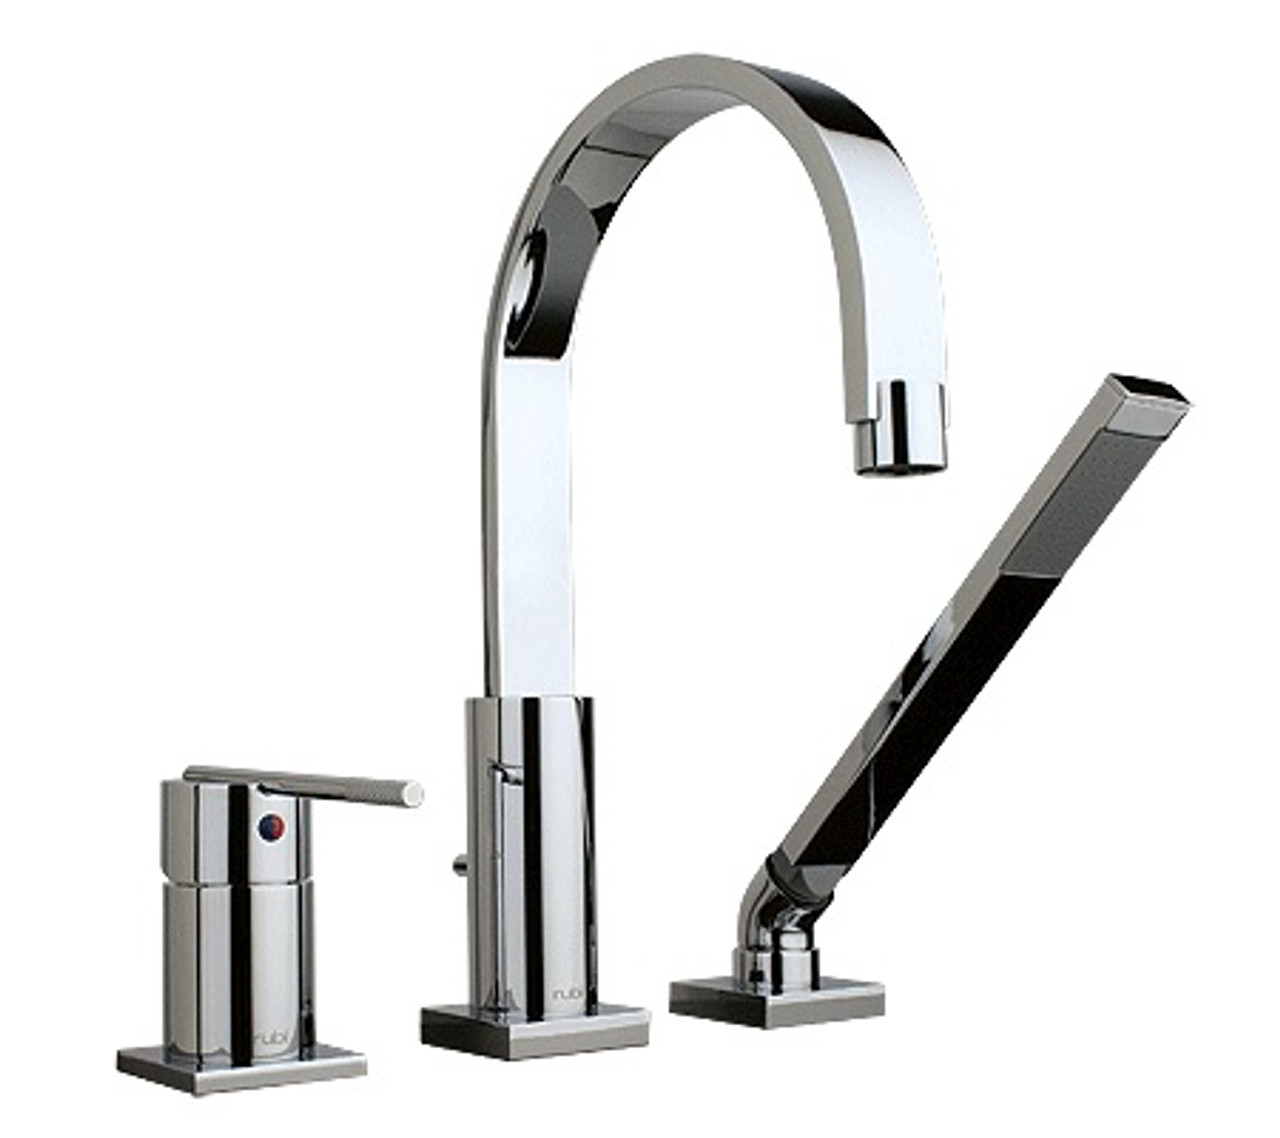 rubi viso 3 hole deck mounted bath faucet with handheld shower